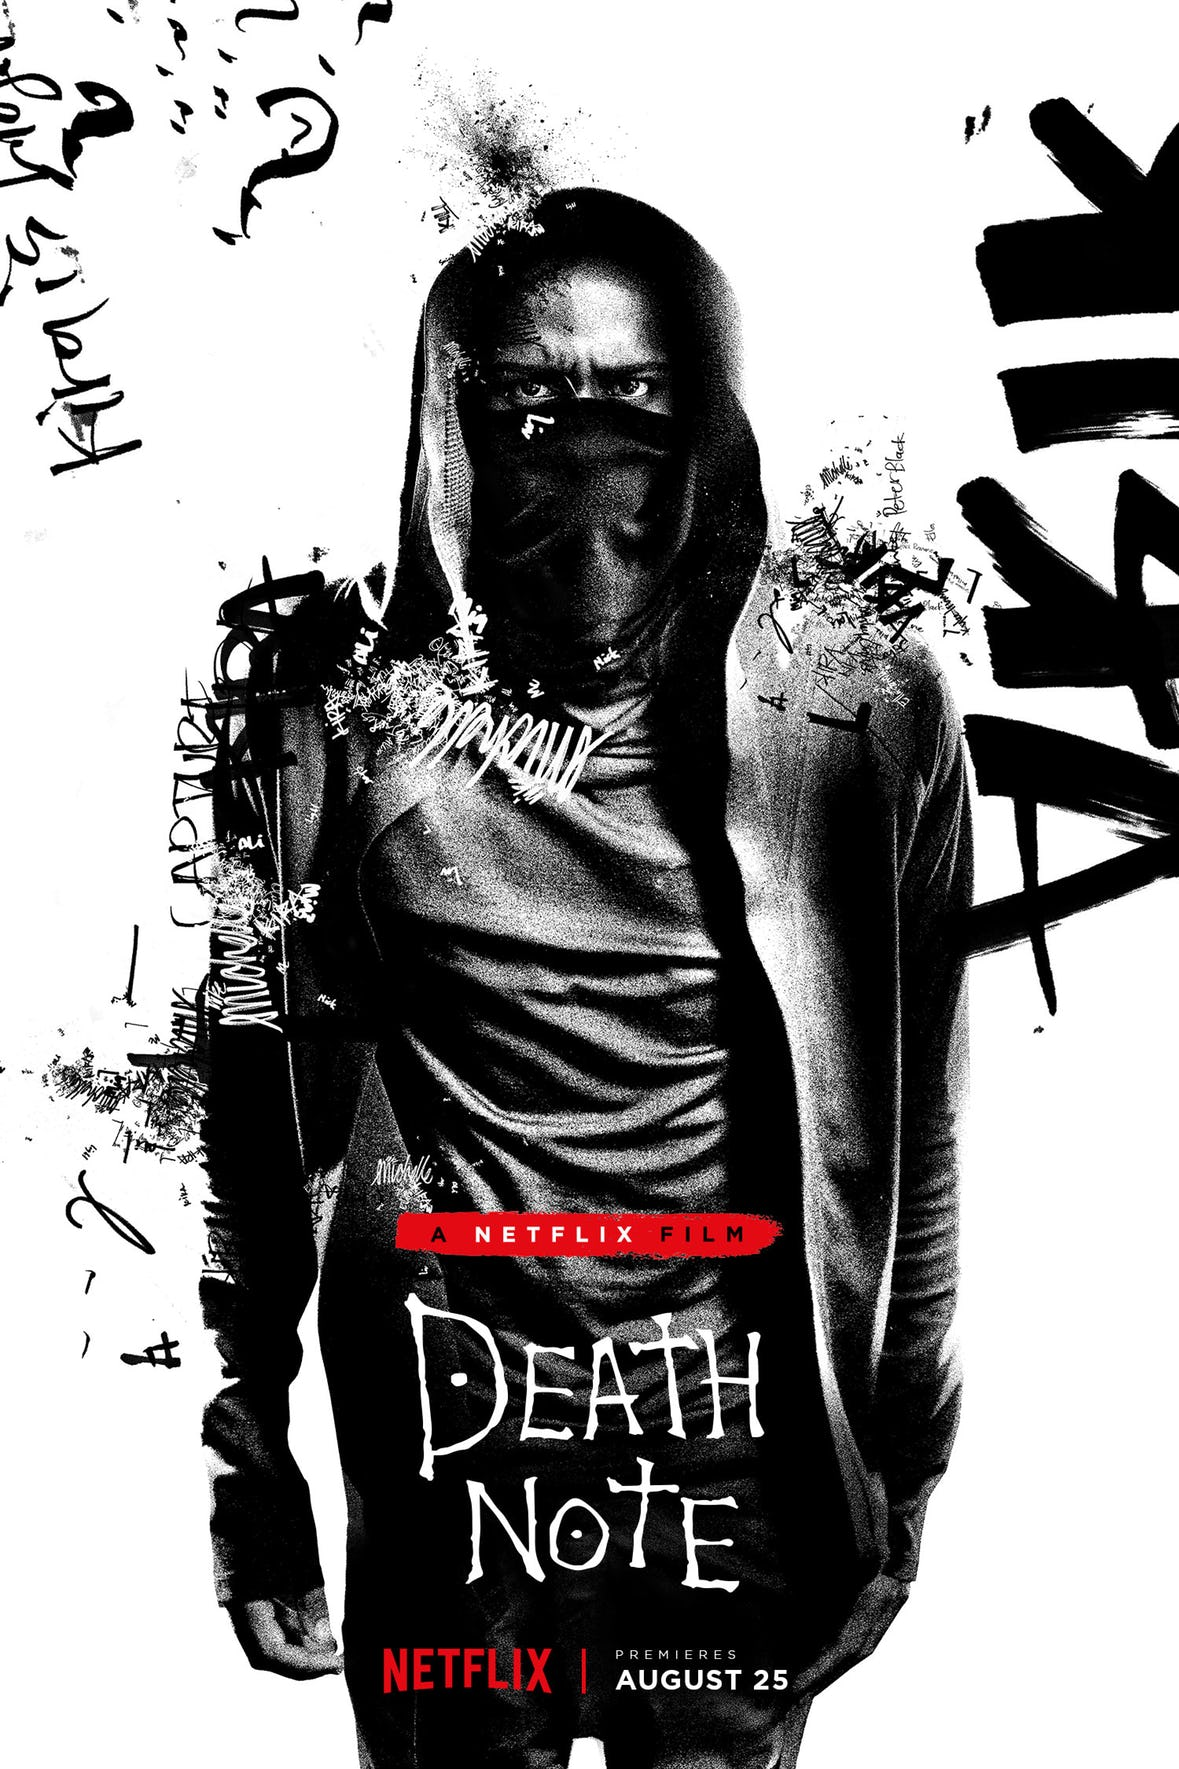 108 New Death Note Movie Poster And Snippet moreover Diesel Brothers Brodozer Takes Over Moab as well Watch besides Watch furthermore Watch. on pony trailer